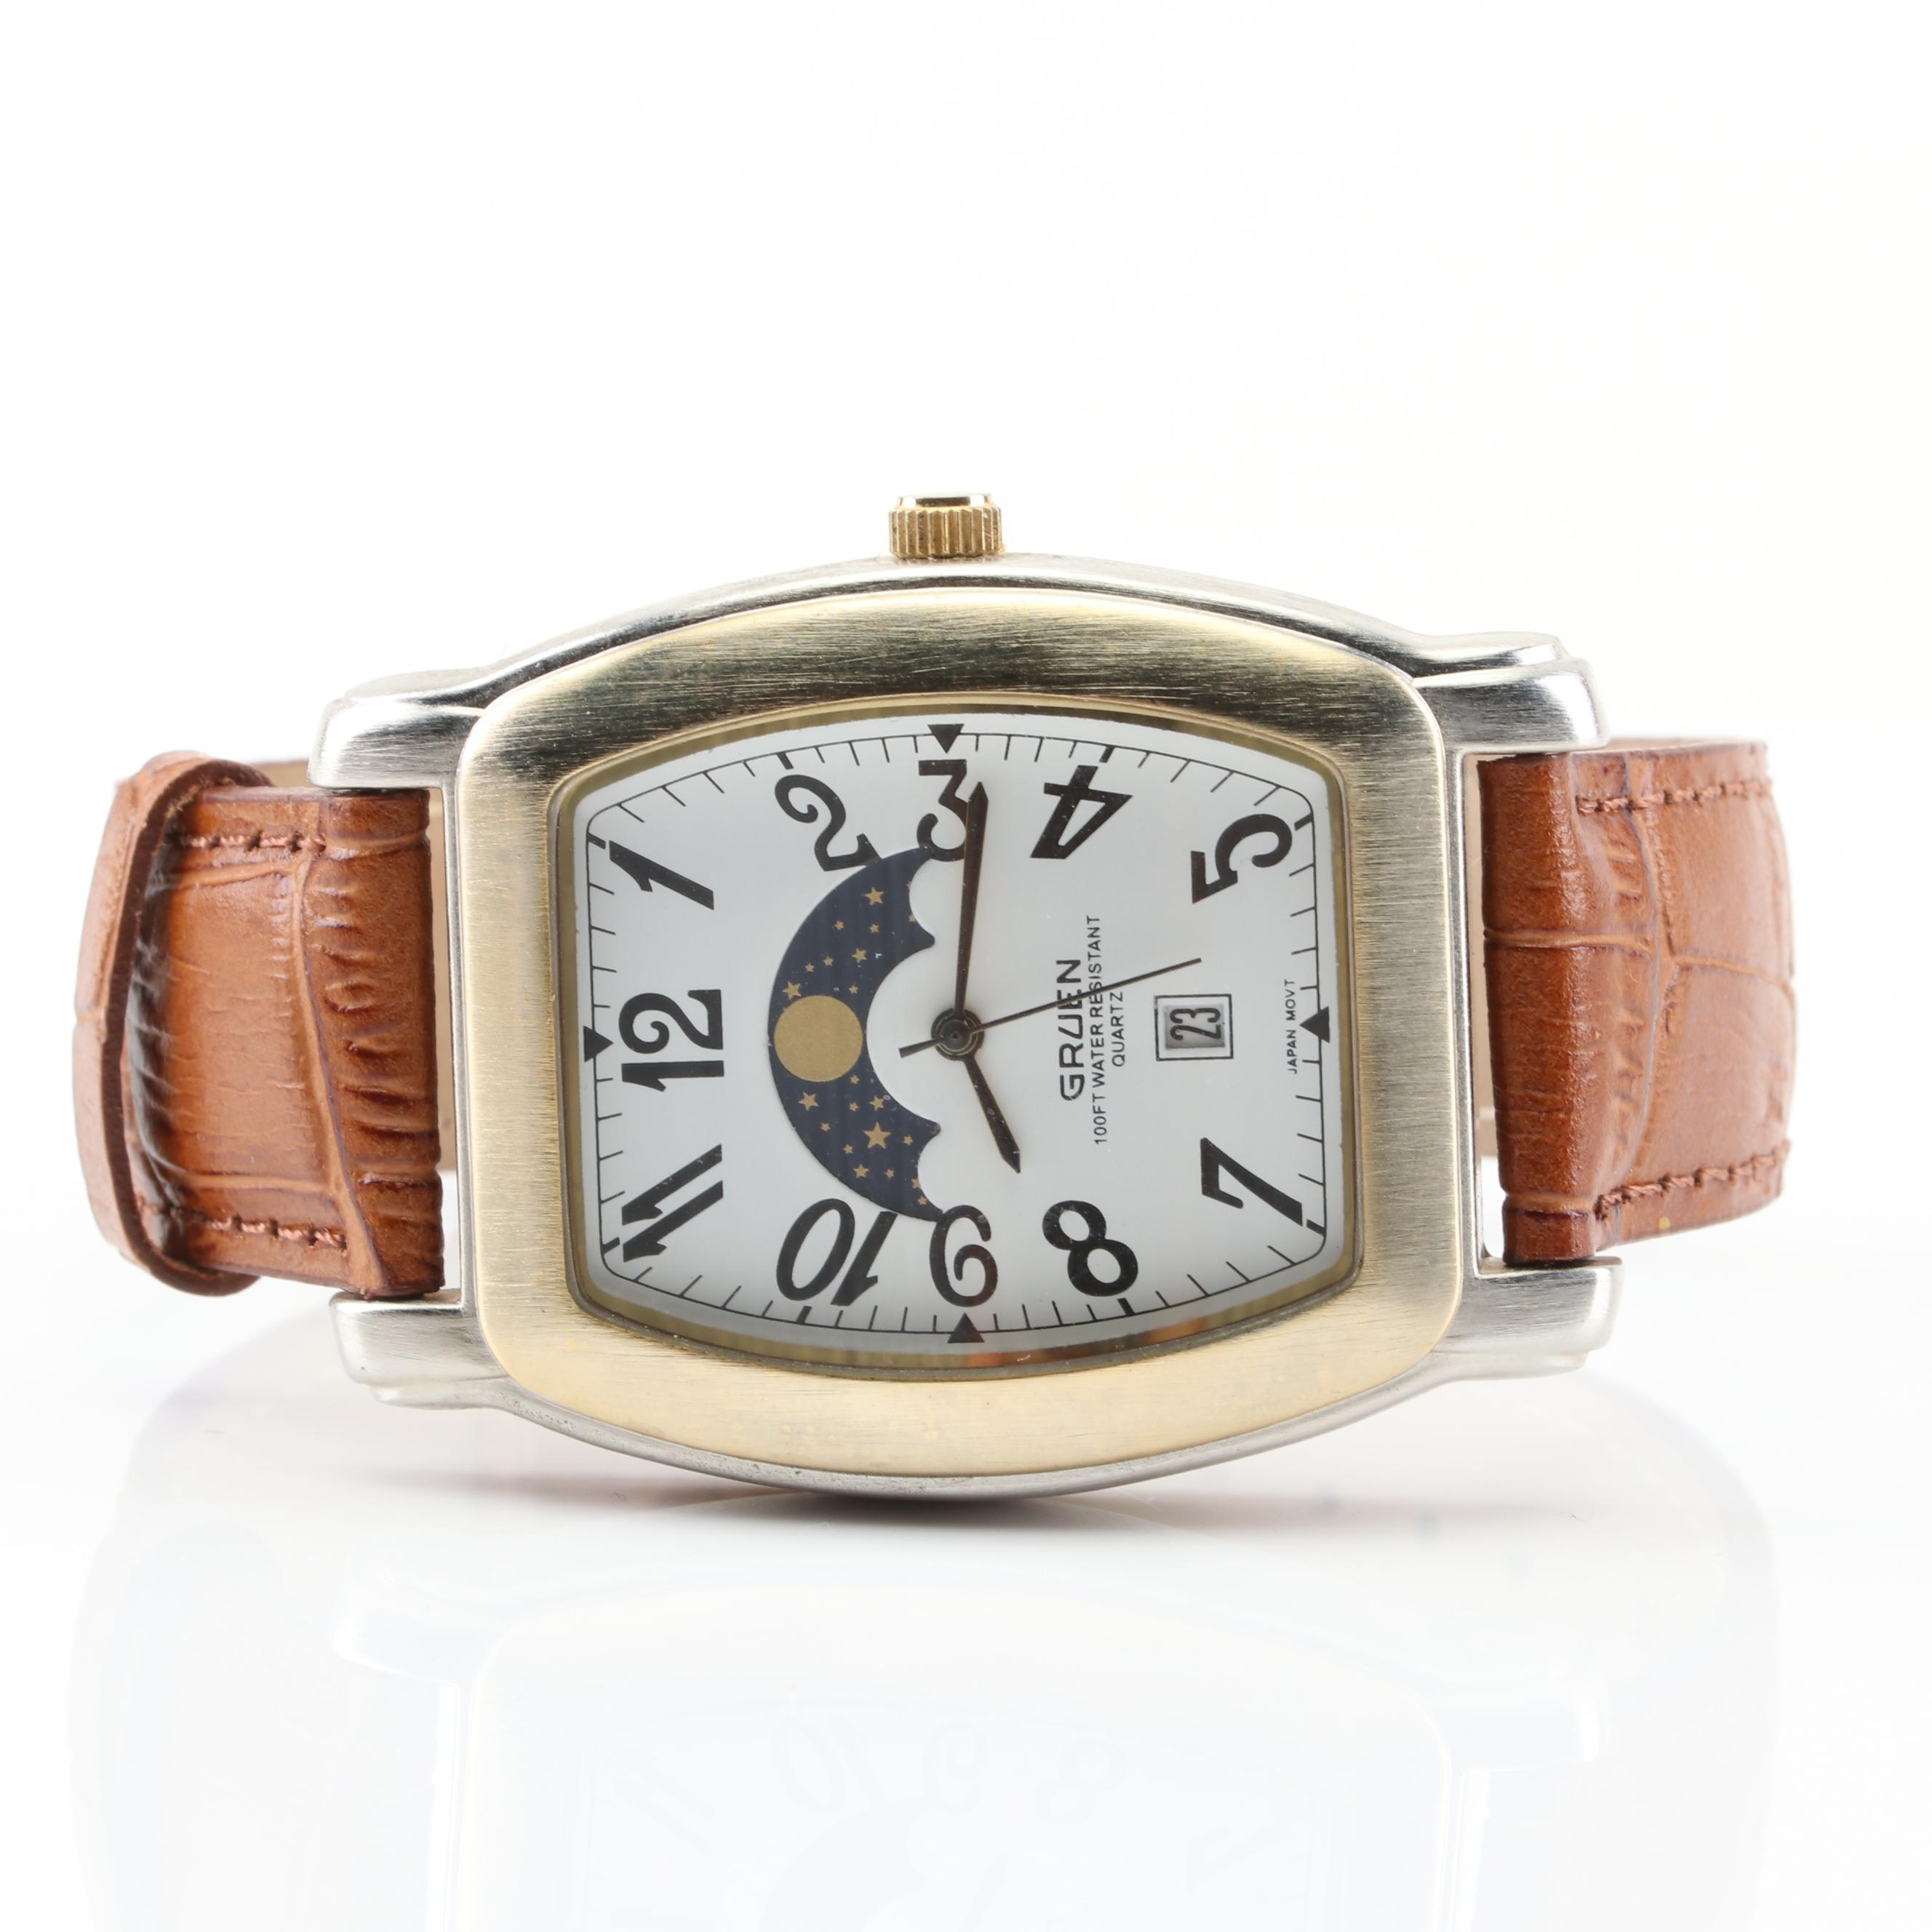 Gruen Moon Phase Wristwatch with Leather Band